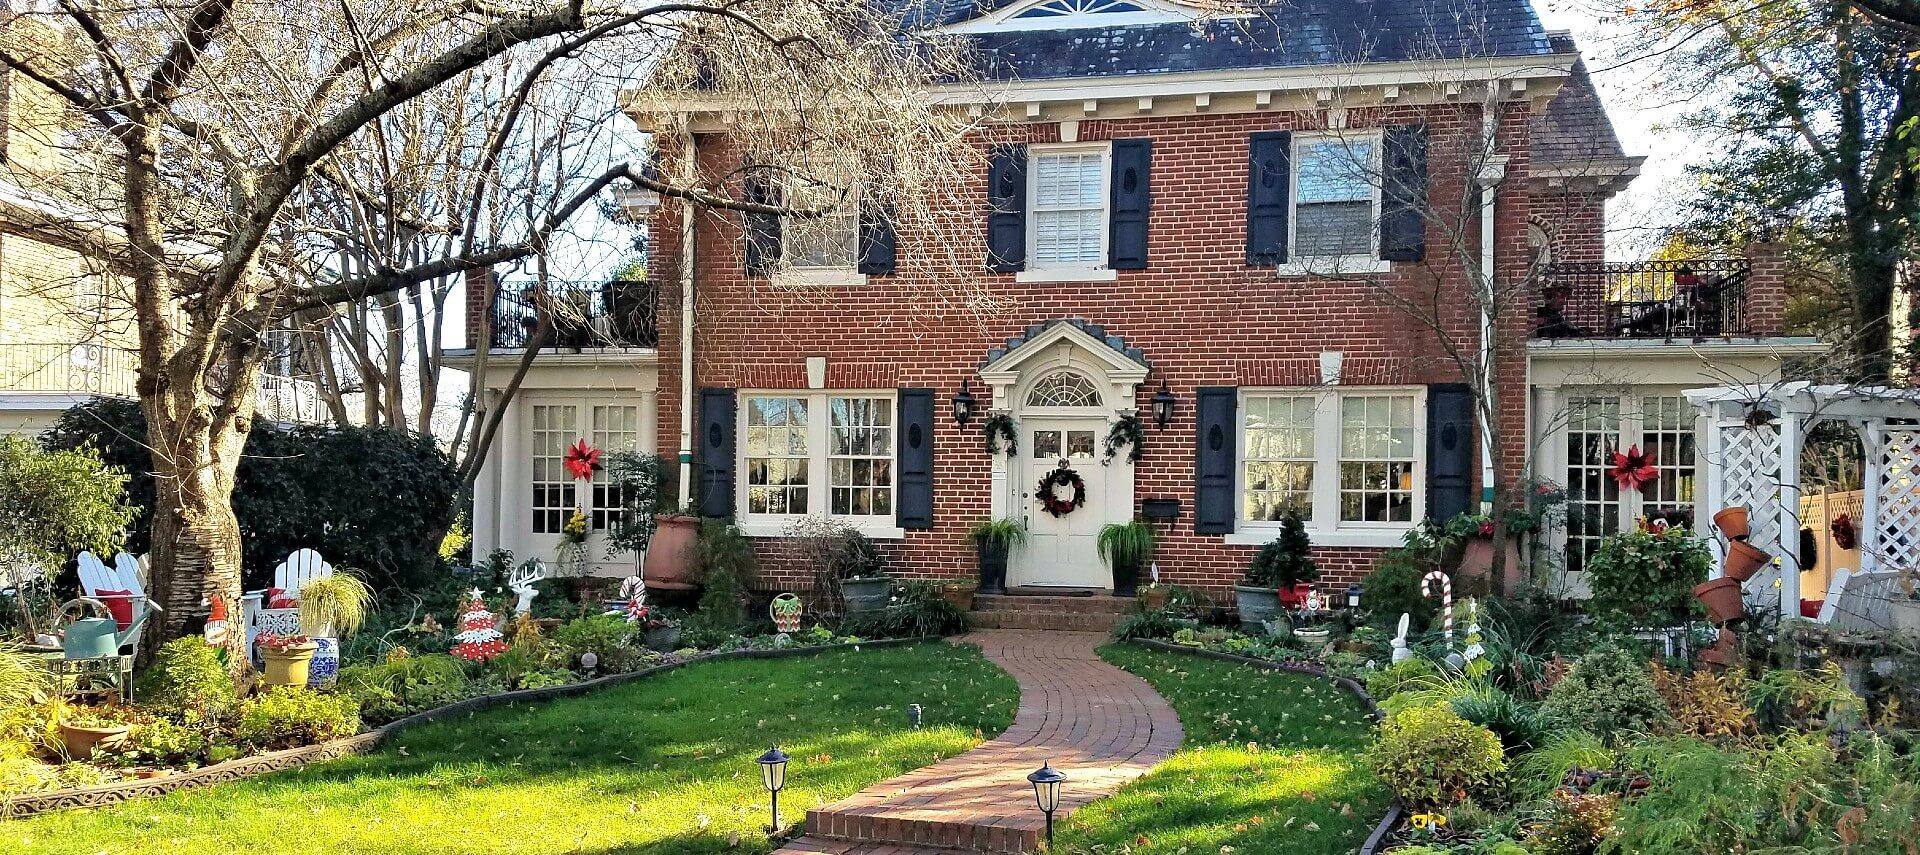 Front brick colonial house with Christmas wreath and decorations scattered around the lawn.